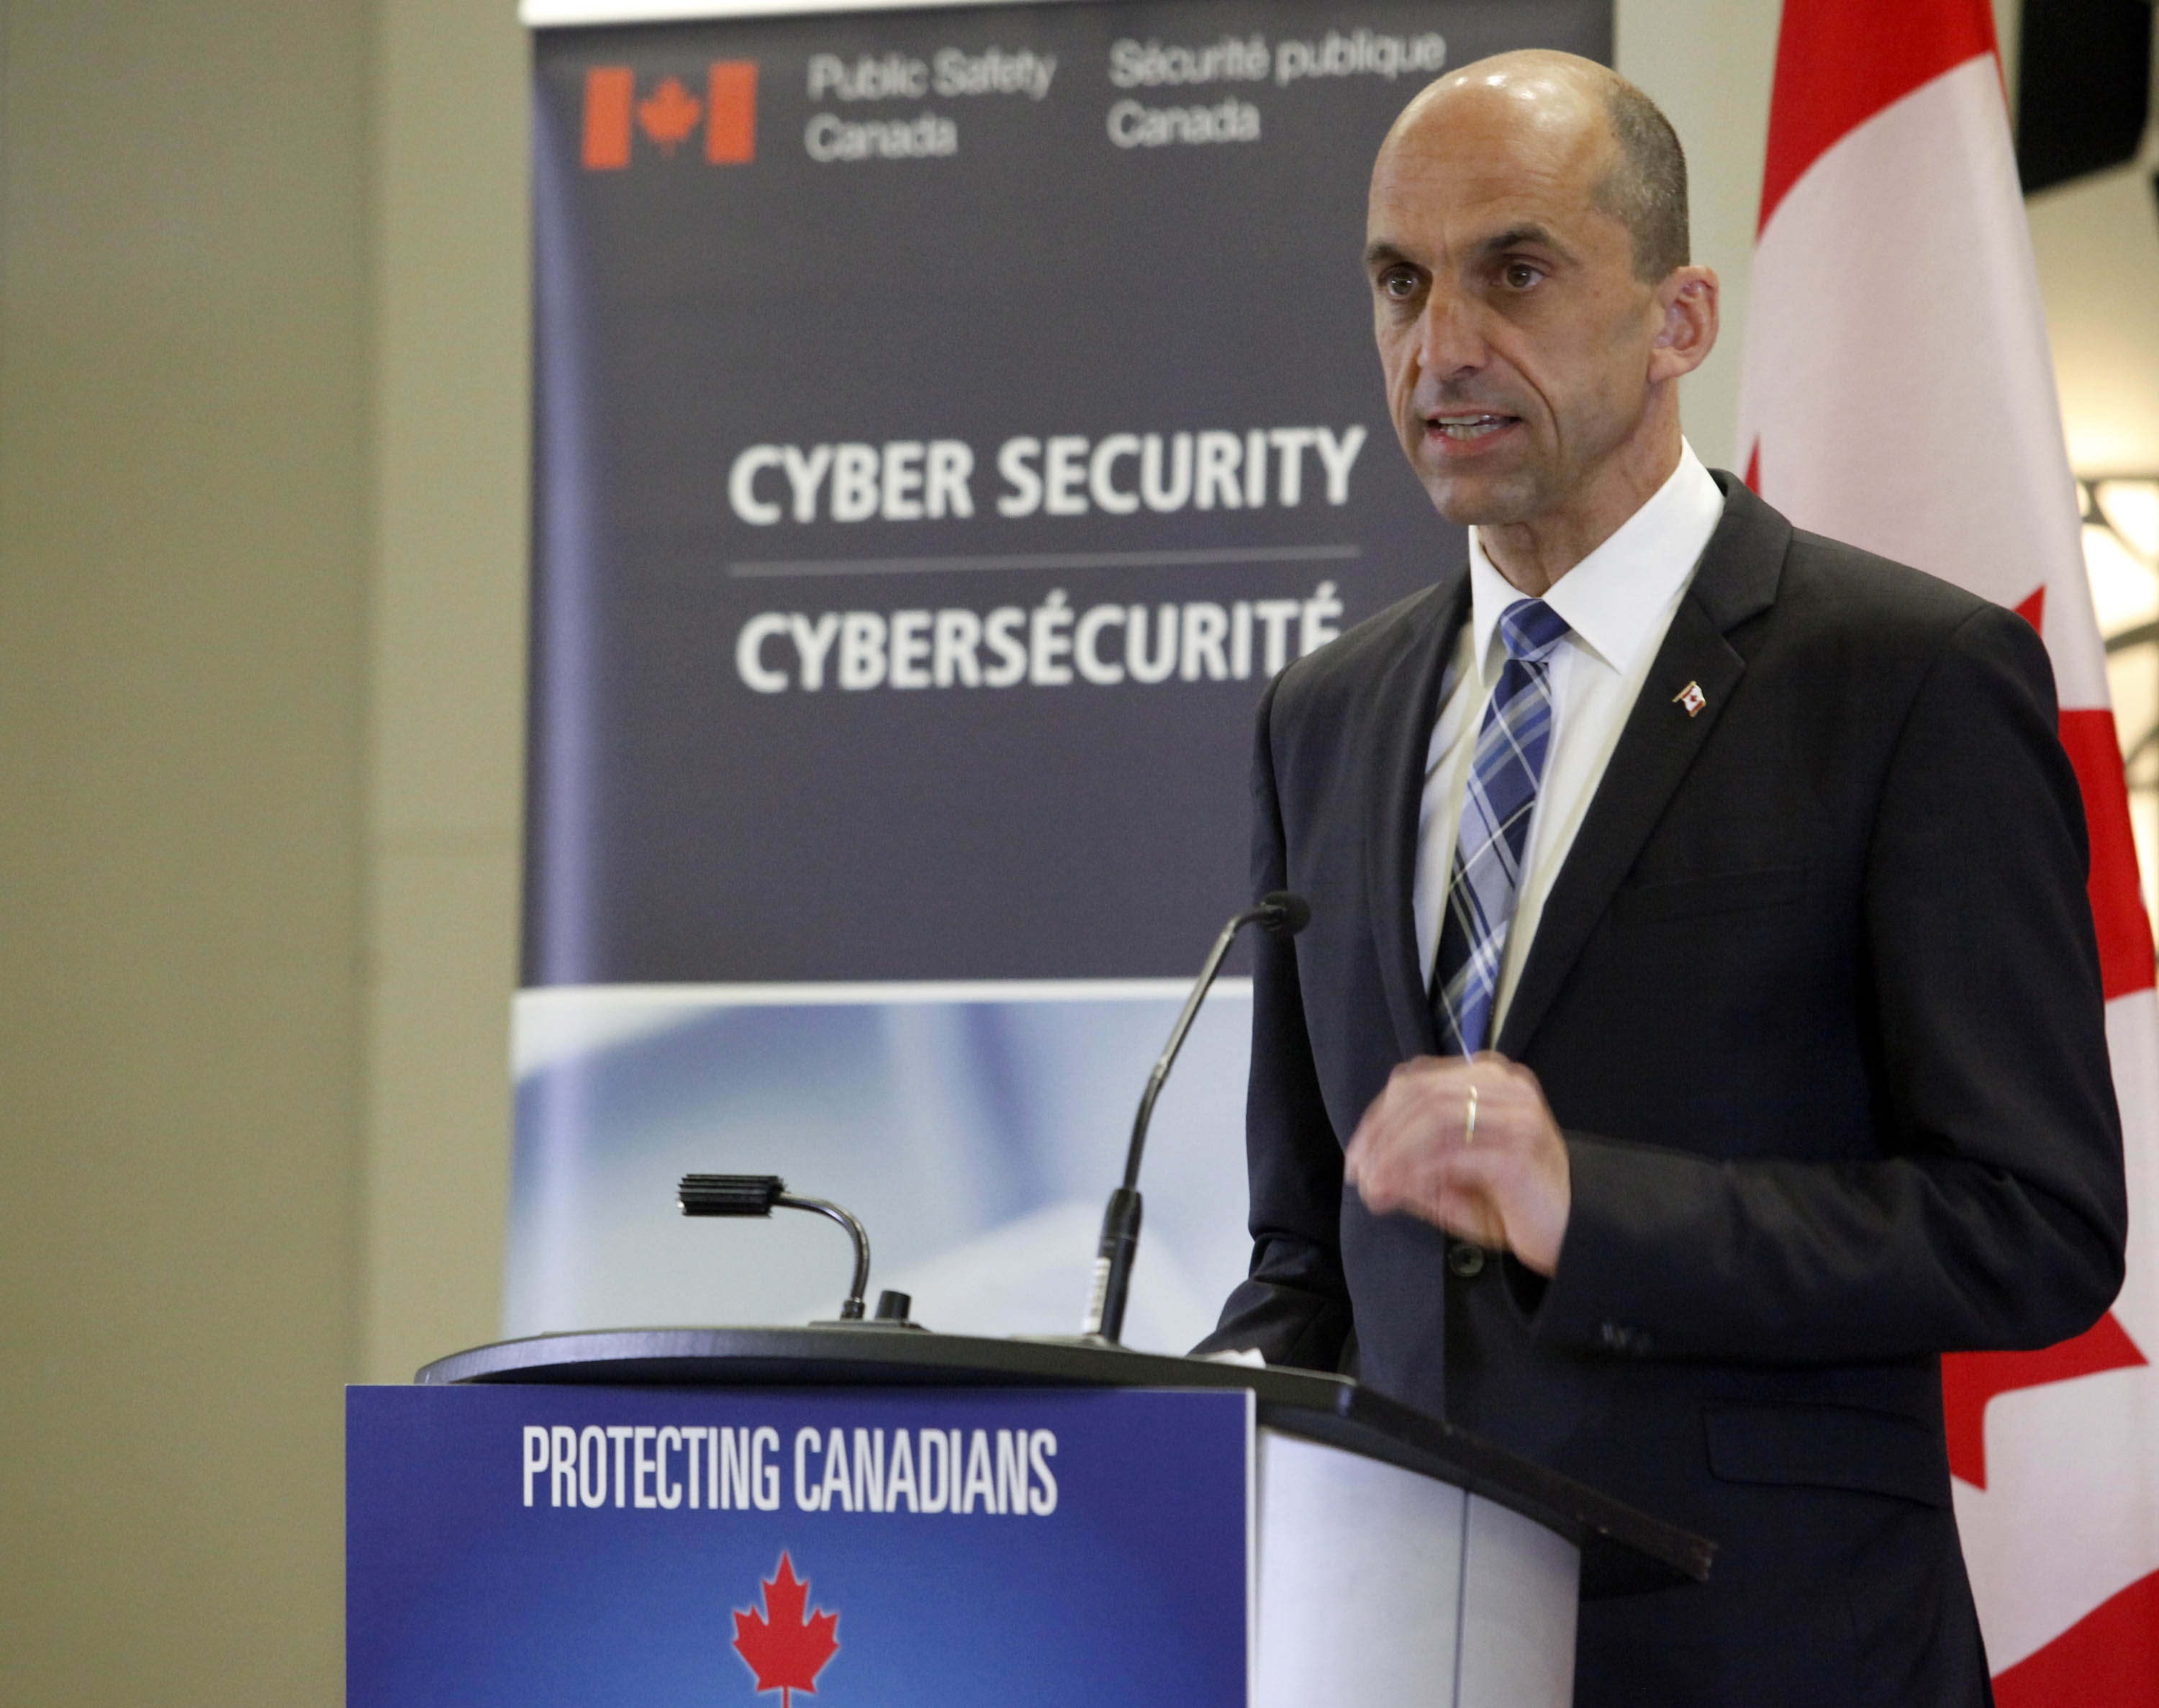 Today, Canada's Minister of Public Safety and Emergency Preparedness, the Honourable Steven Blaney, was joined by the President and Chief Executive of the Canadian Council of Chief Executives, the Honourable John Manley, to announce significant investments to advance Canada's Cyber Security Strategy.